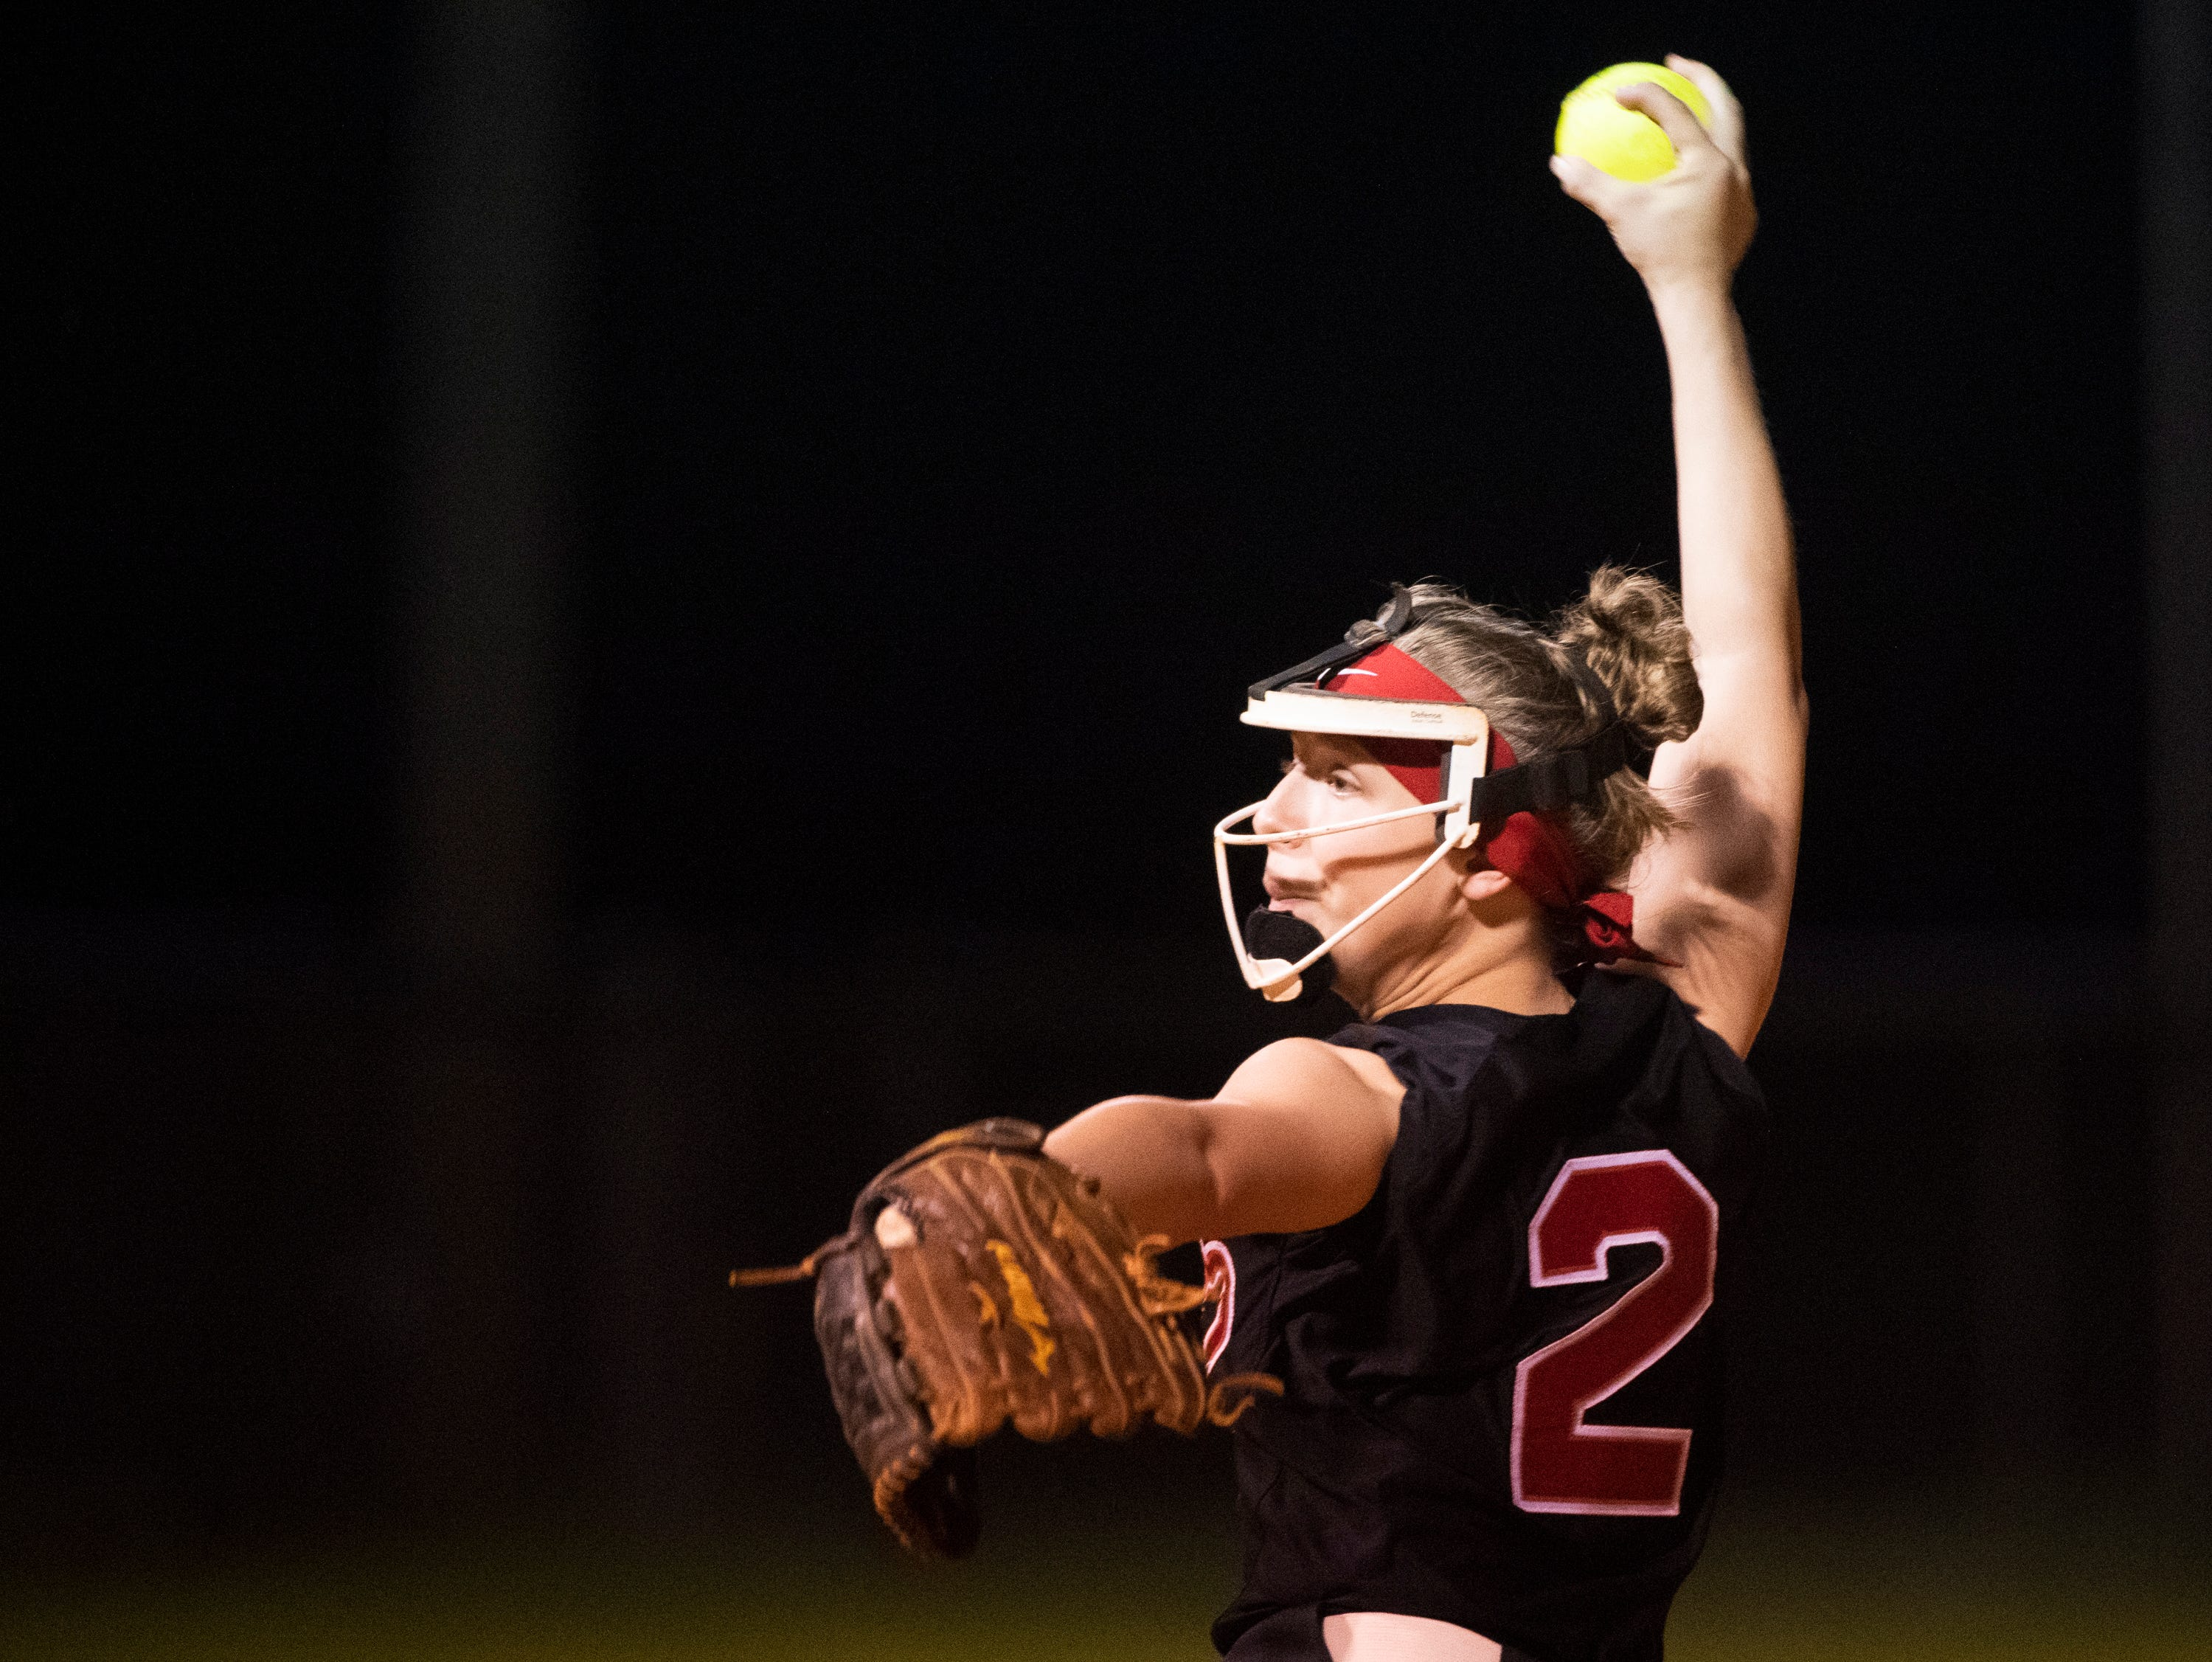 Hillcrest's Kristyn Ezzo (2) pitches against Boiling Springs High School during the game at Hillcrest Friday, April 12, 2019.